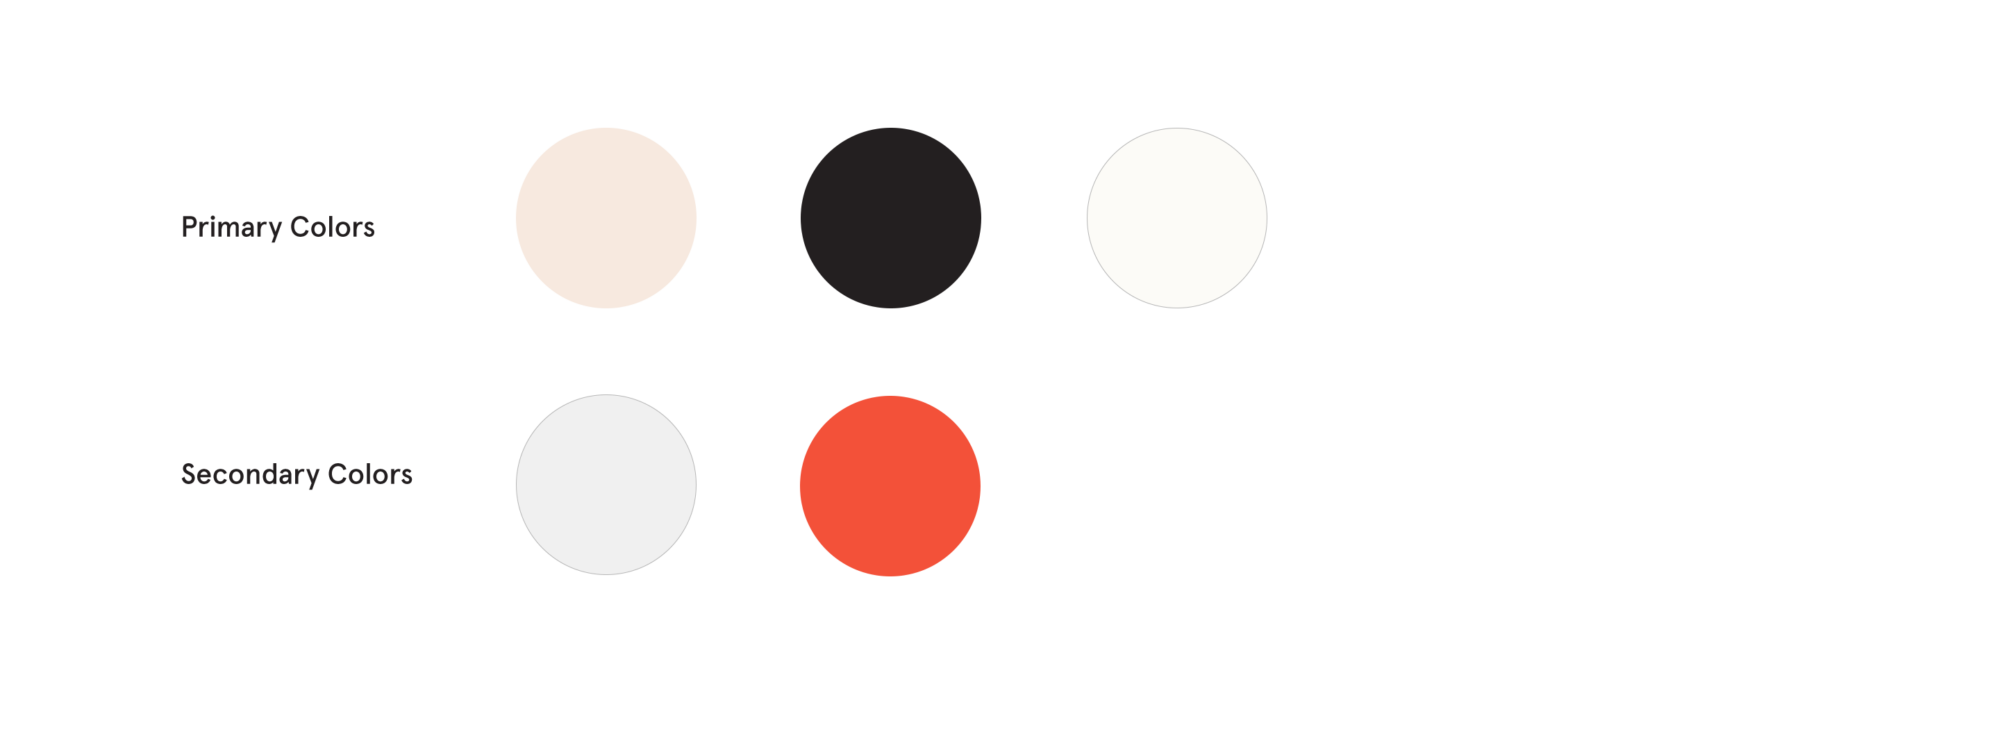 Primary and secondary color choices for the Pollock-Krasner Foundation website redesign